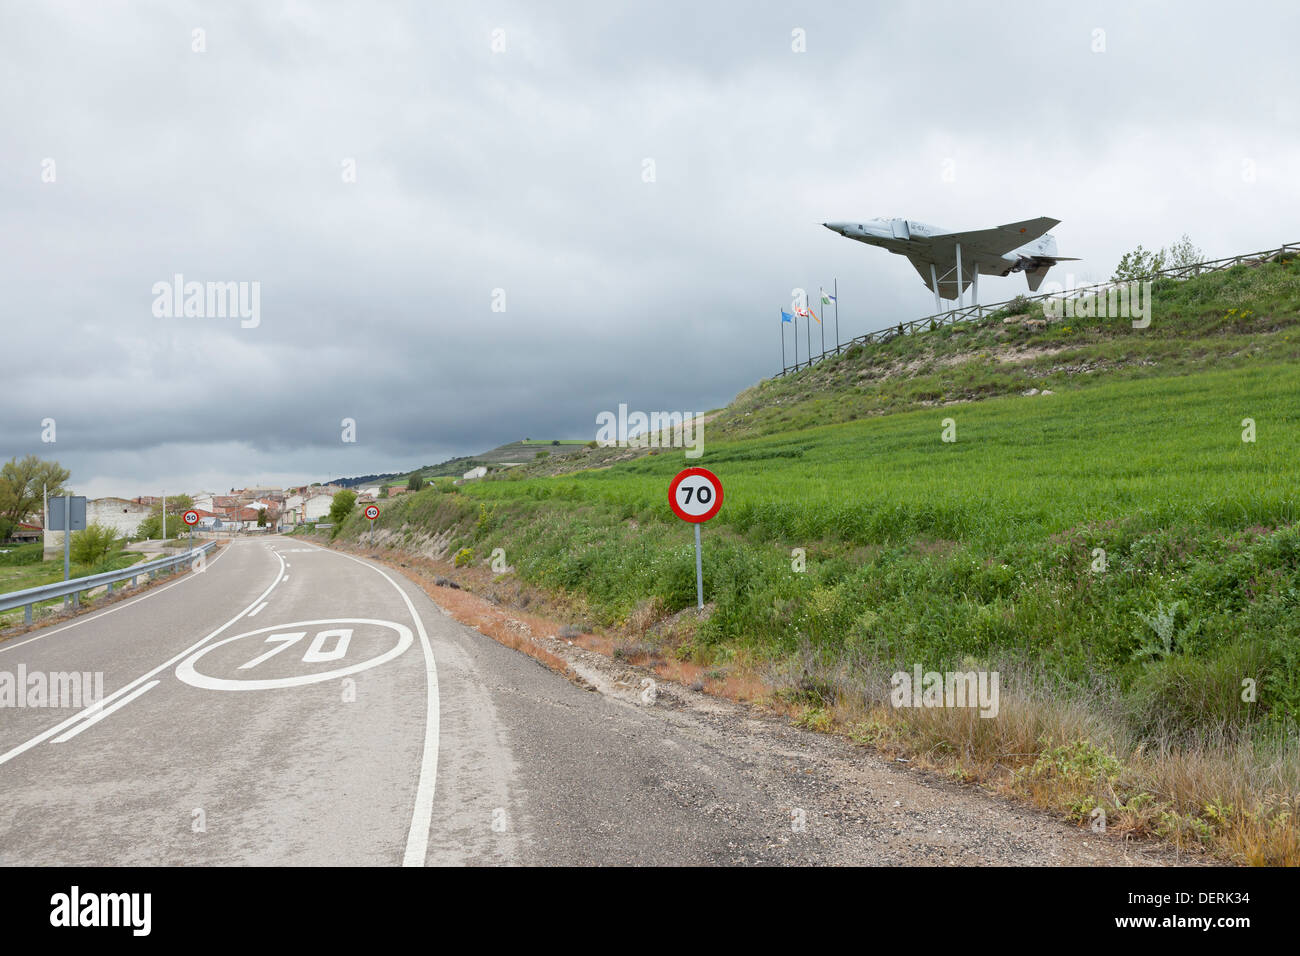 Monument to local military aviation pioneers in the villiage of Antigüedad - Province of Palencia, Castile and León, Spain - Stock Image